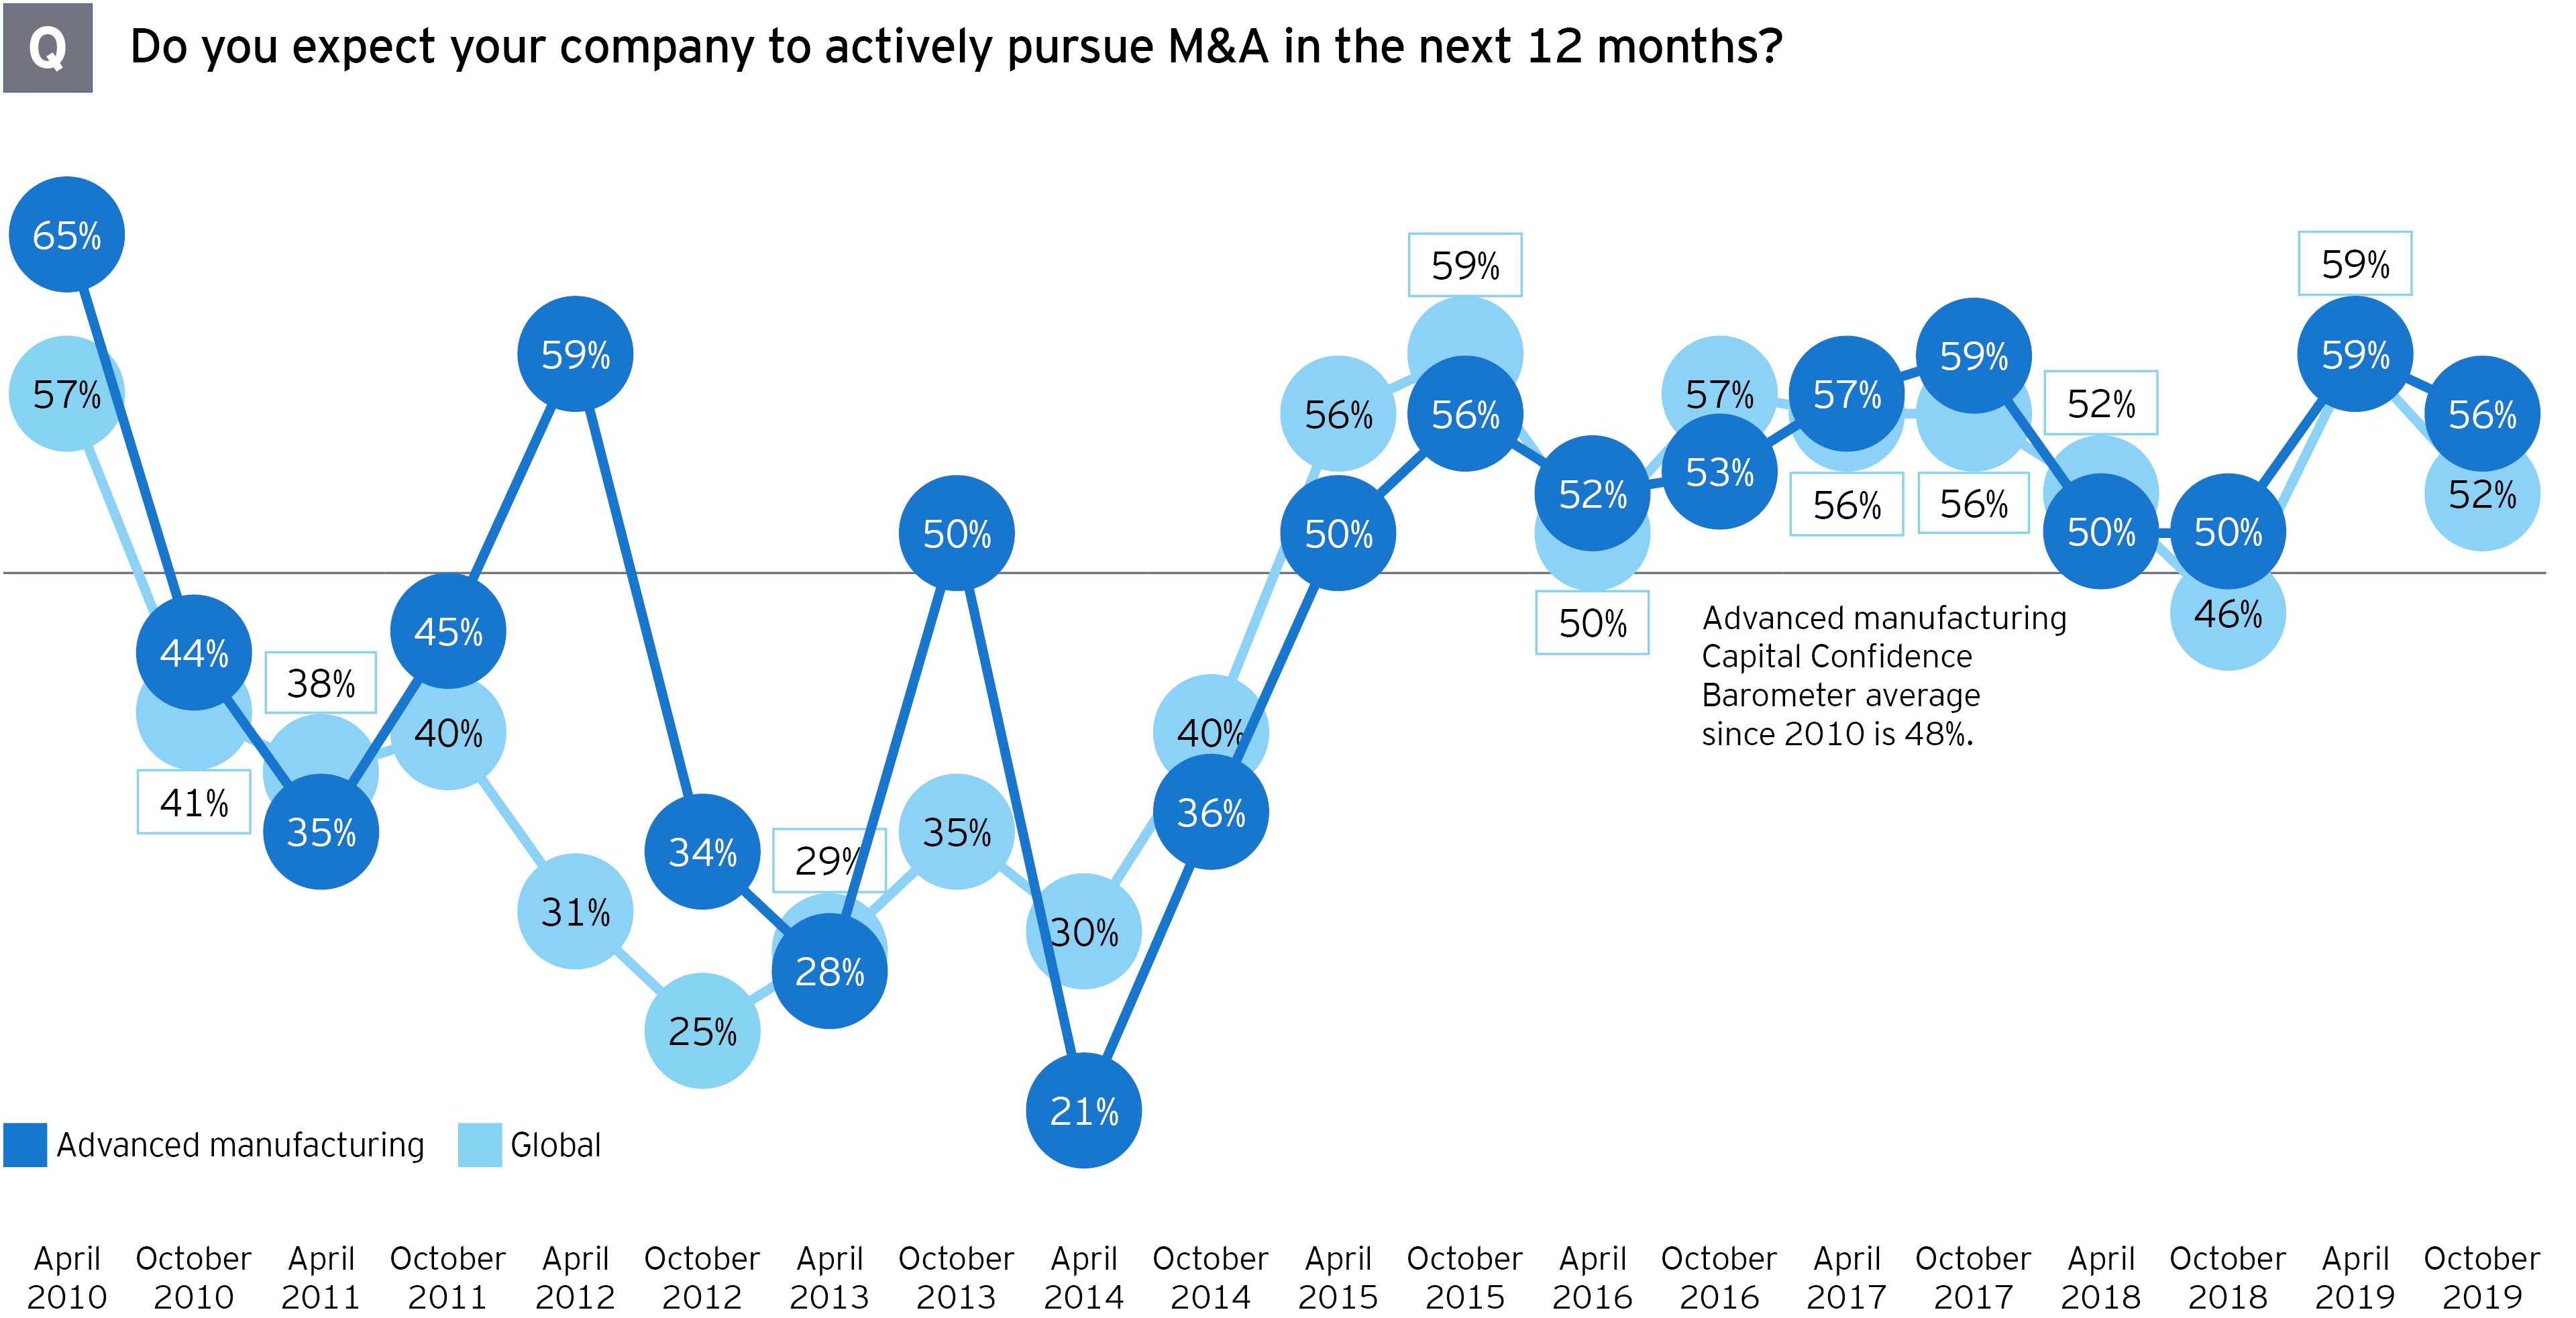 M&A survey manufacturing expectations pursue mergers and acquisitions next 12 months